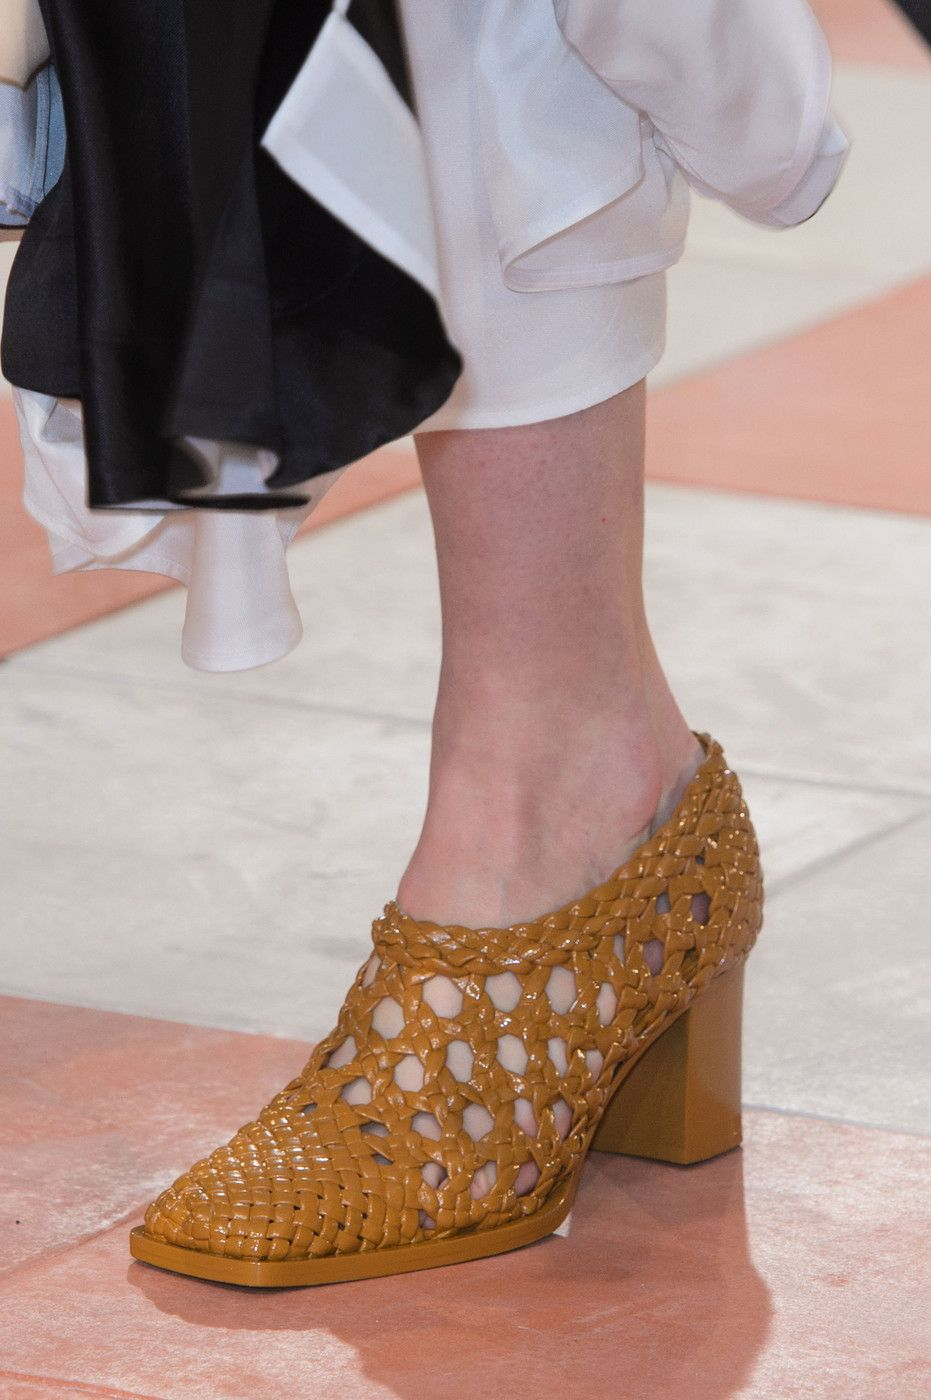 Celine At Paris Fashion Week Fall 2015 Gold High Heel Sandals Louis Vuitton Shoes Stylish Shoes